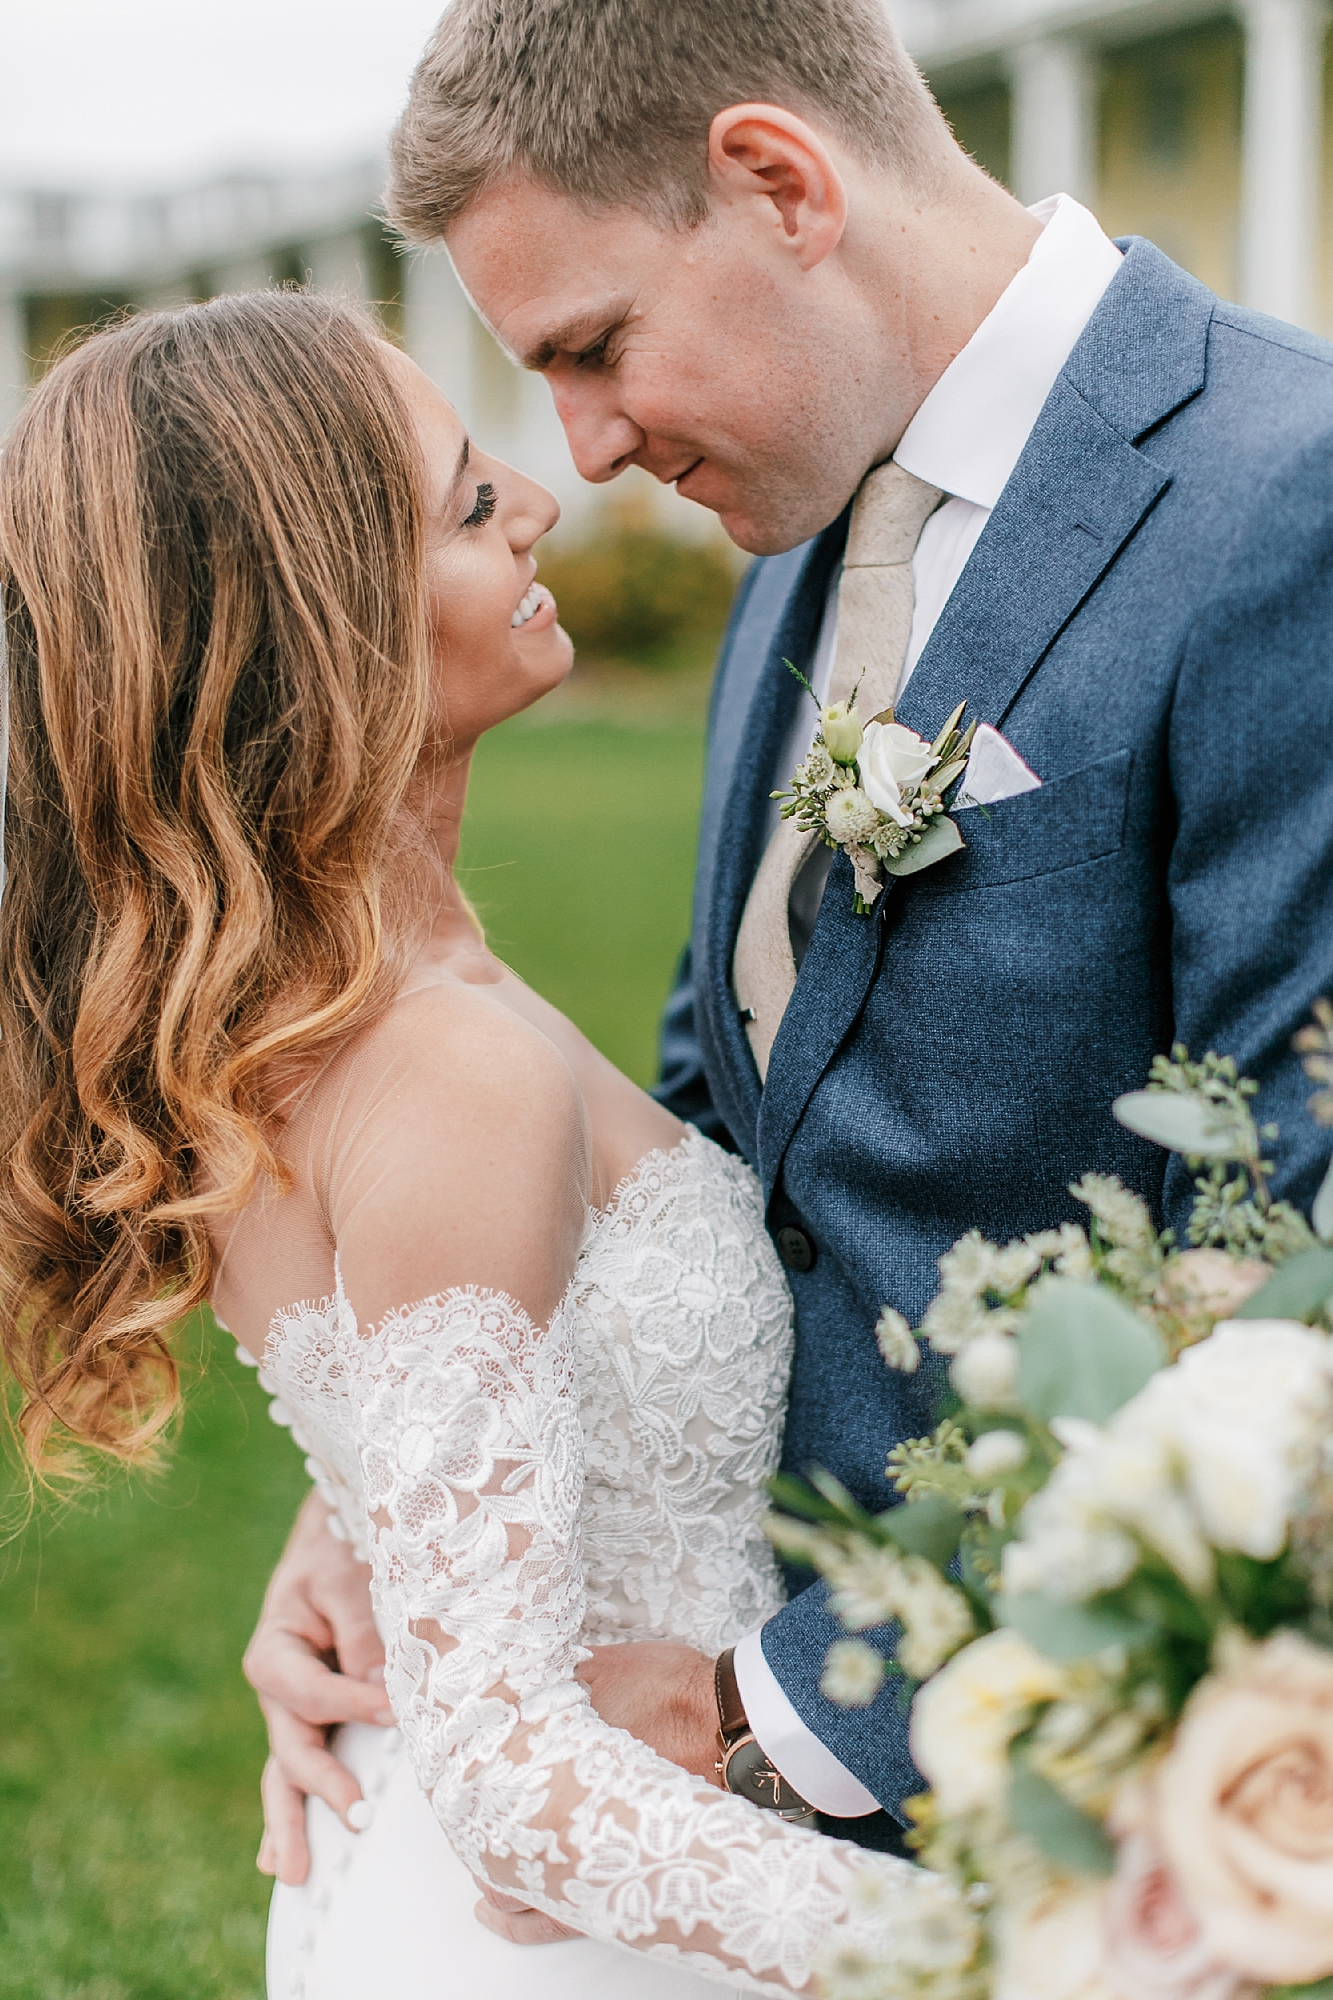 Intimate and Joyful Wedding Photography in Cape May NJ by Magdalena Studios 0017 4